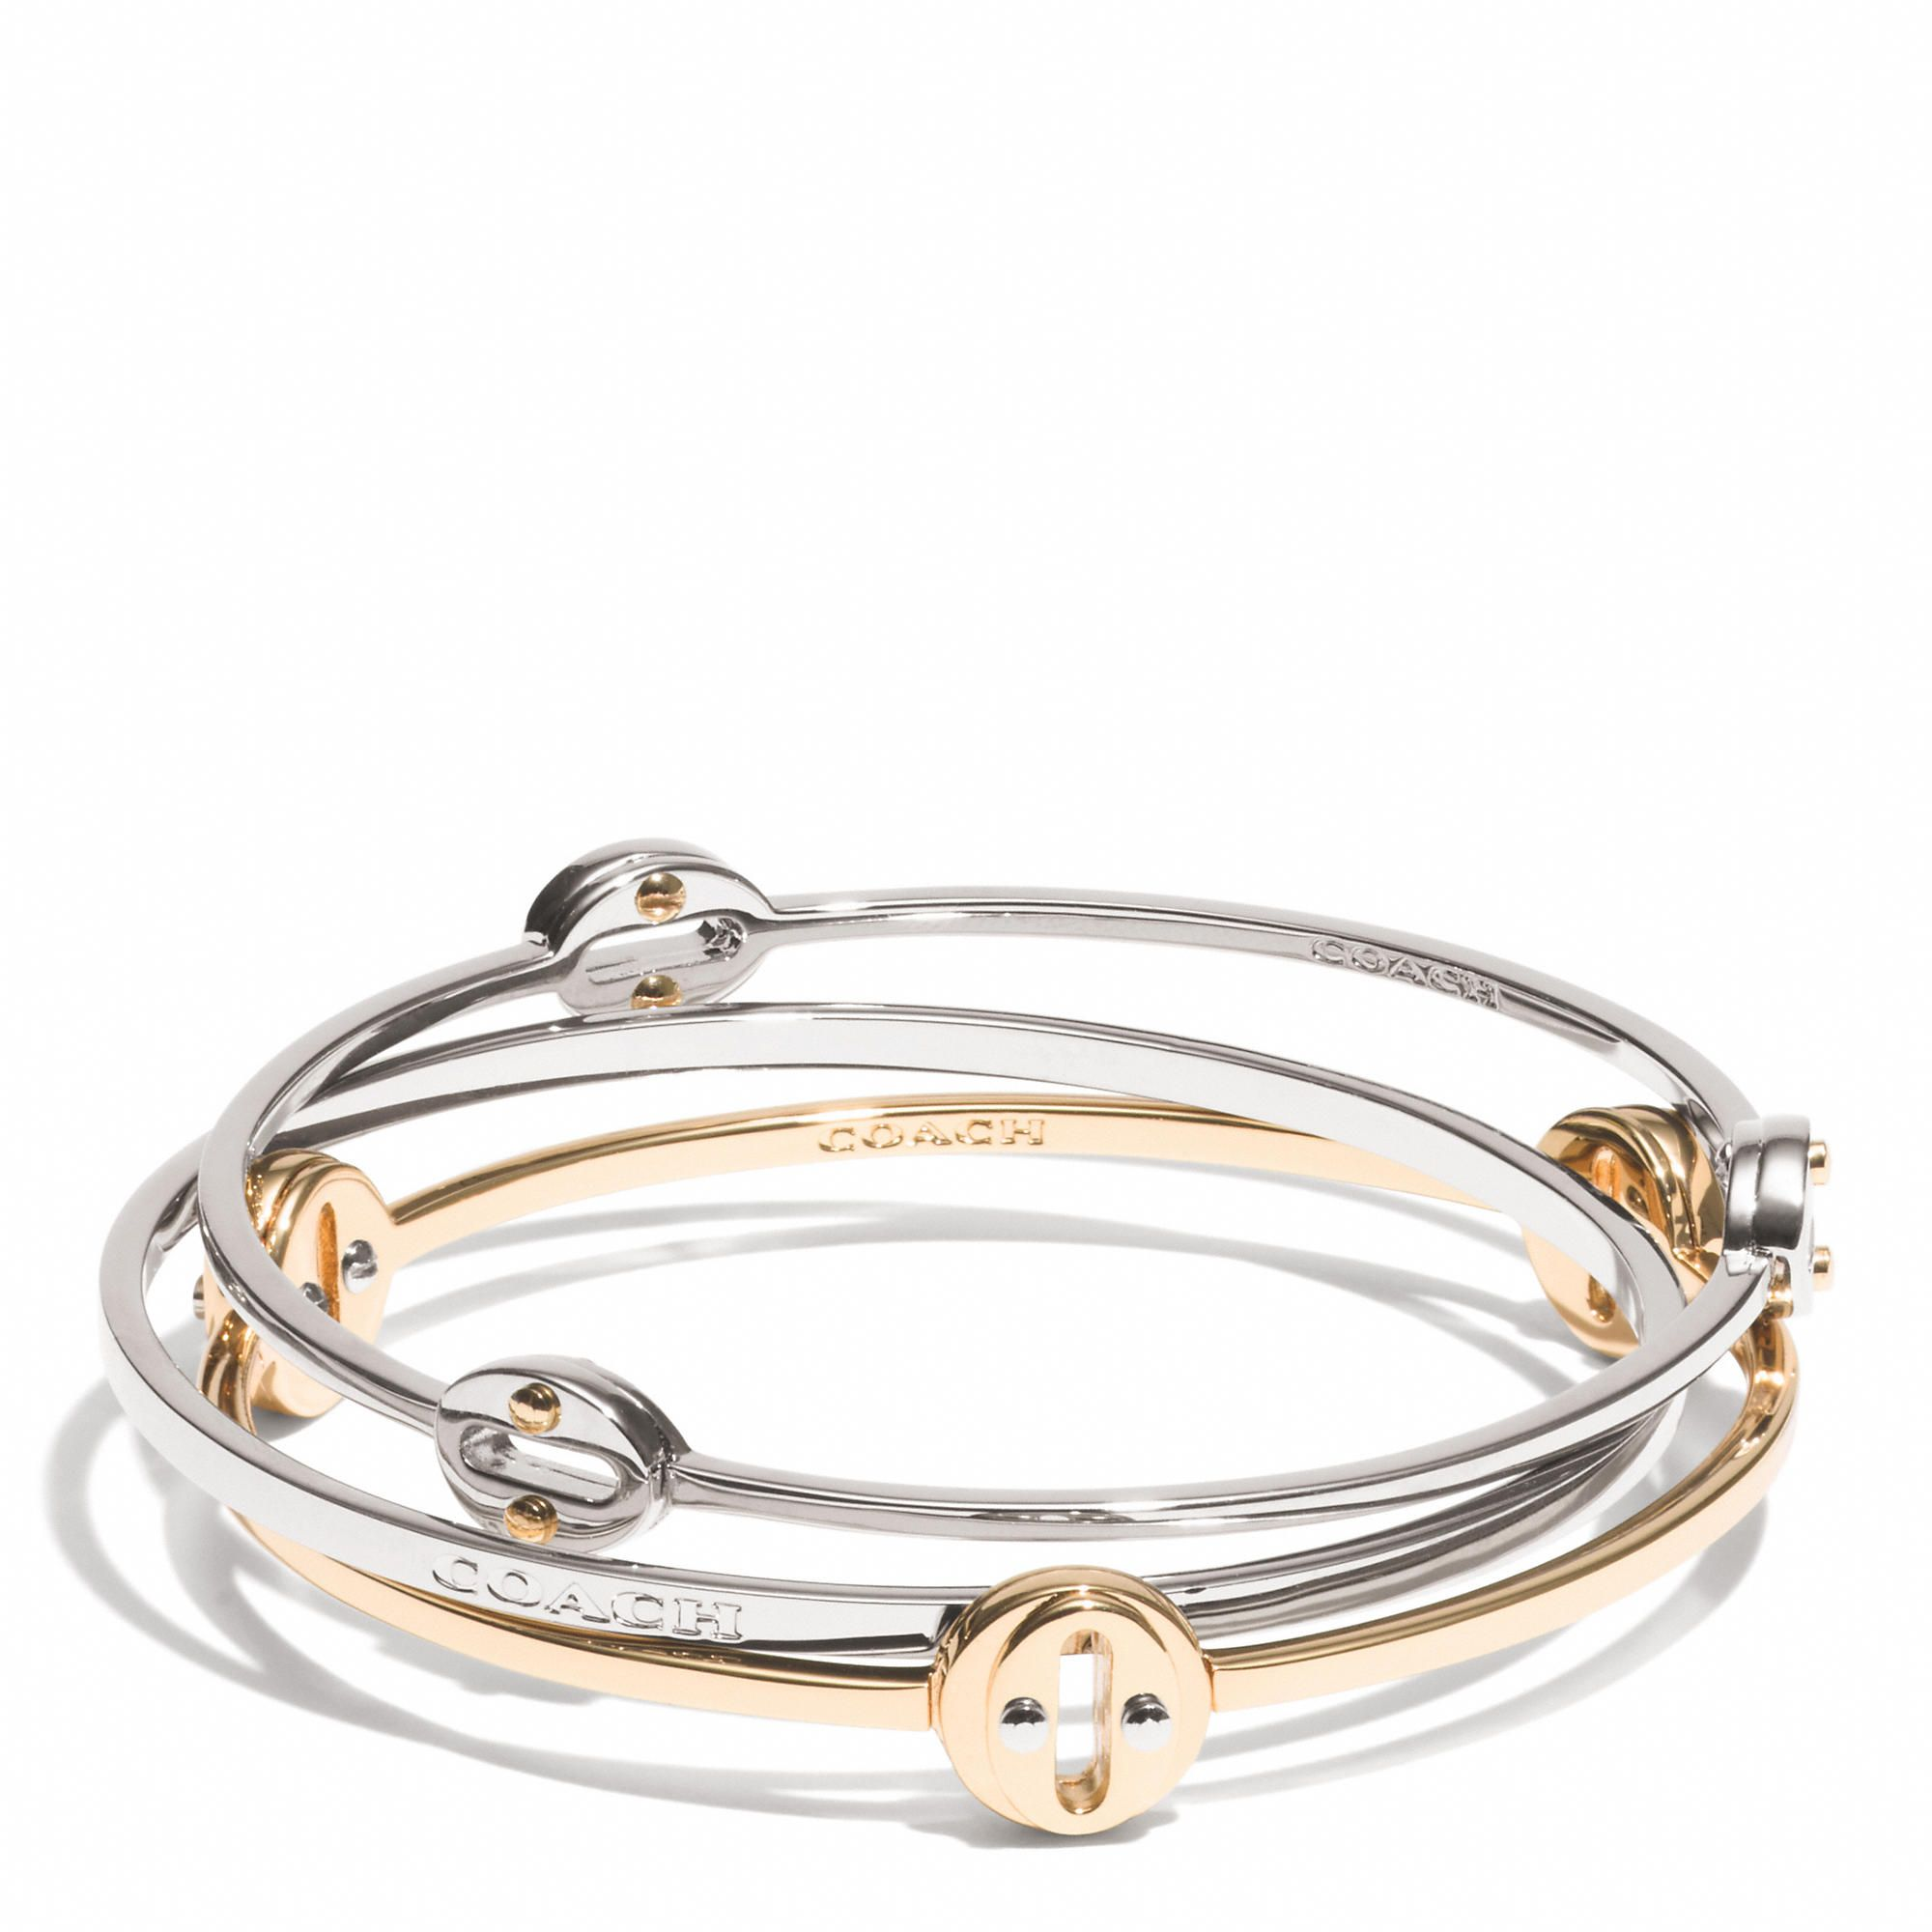 Coach Oval Bangle Set Accessories Pinterest Bangle Set Bangle